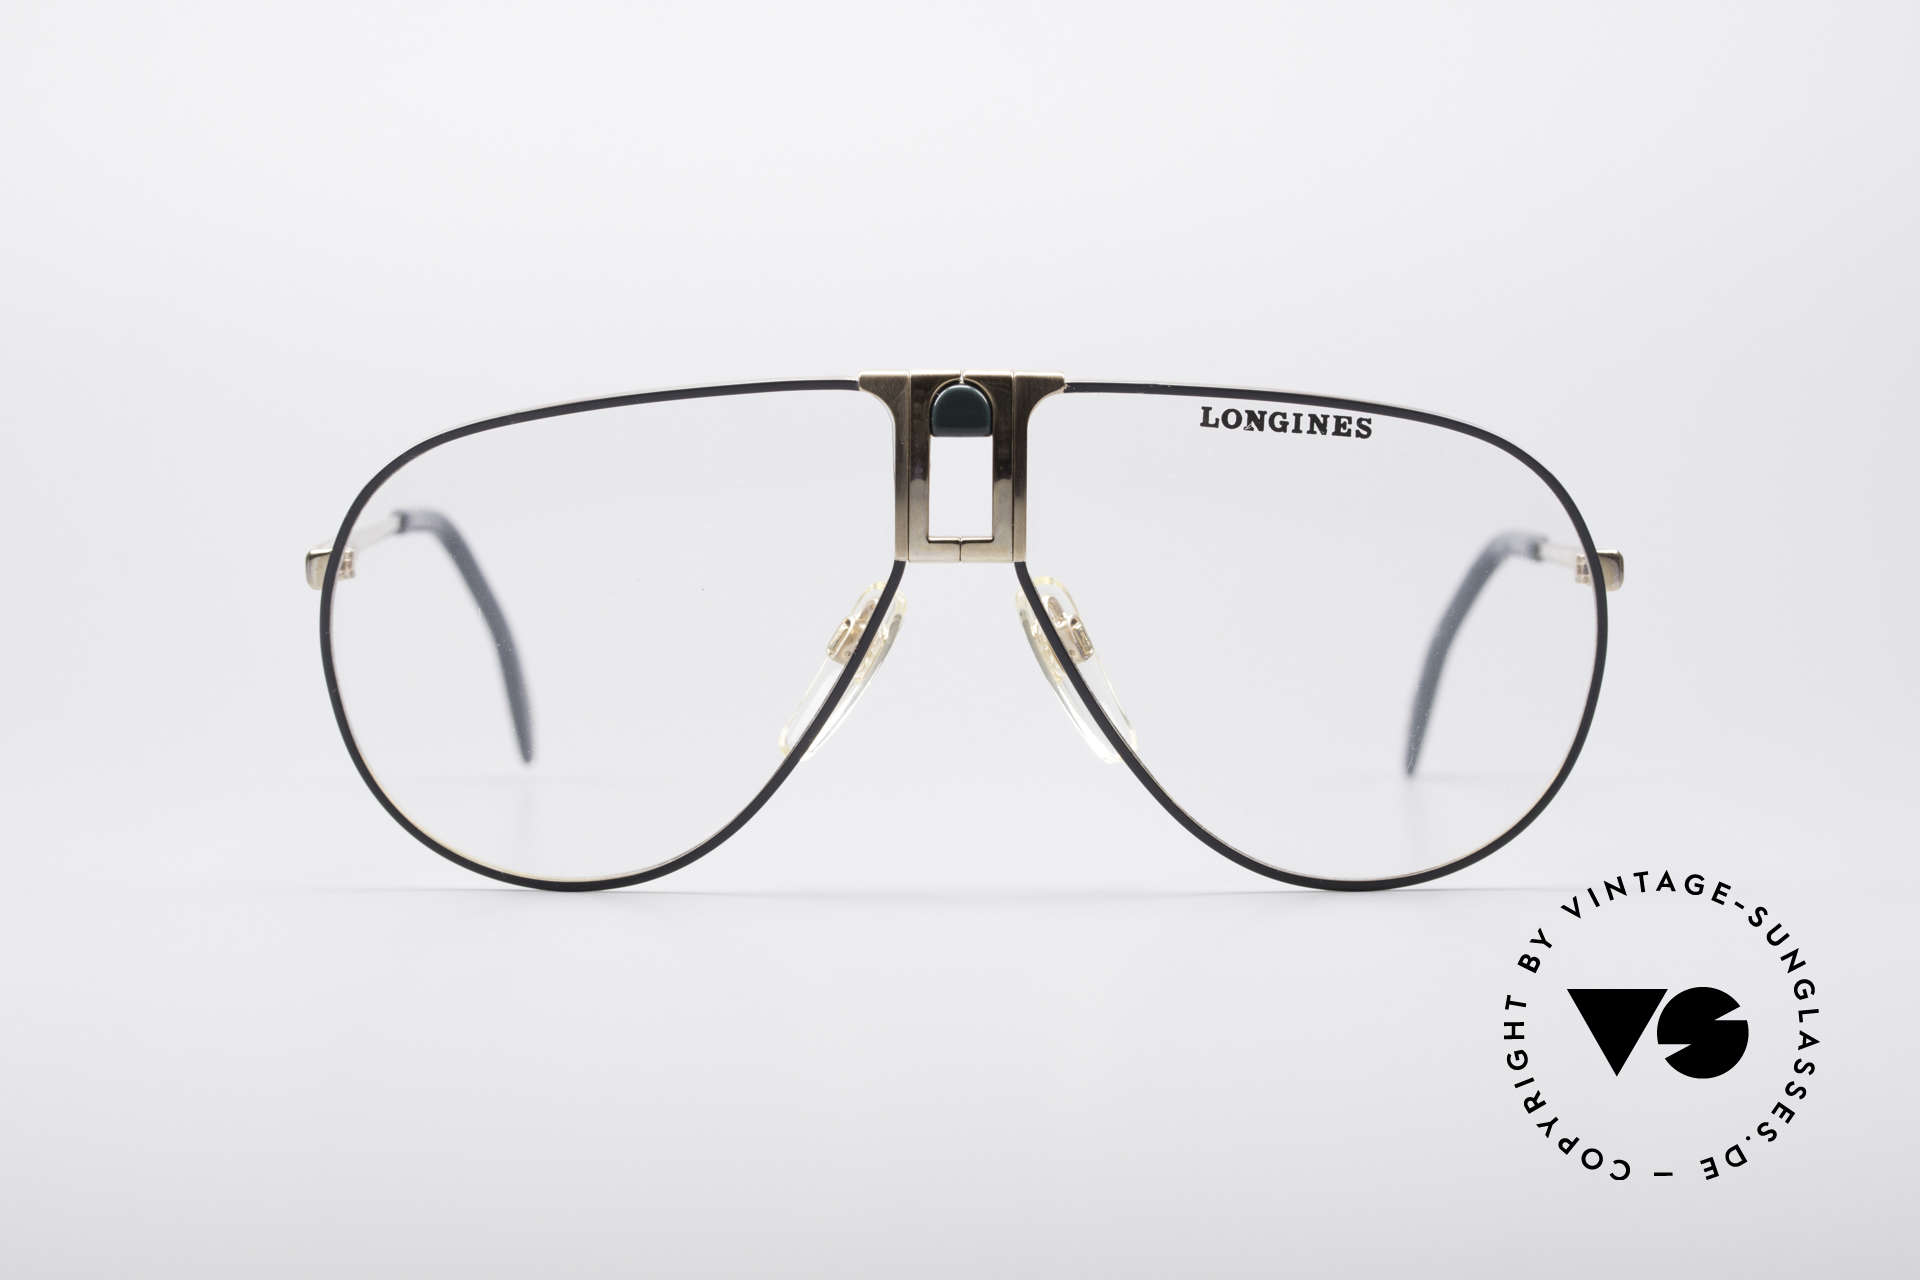 Longines 0154 1980's Aviator Glasses, precious frame with spring hinges (Metzler, Germany), Made for Men